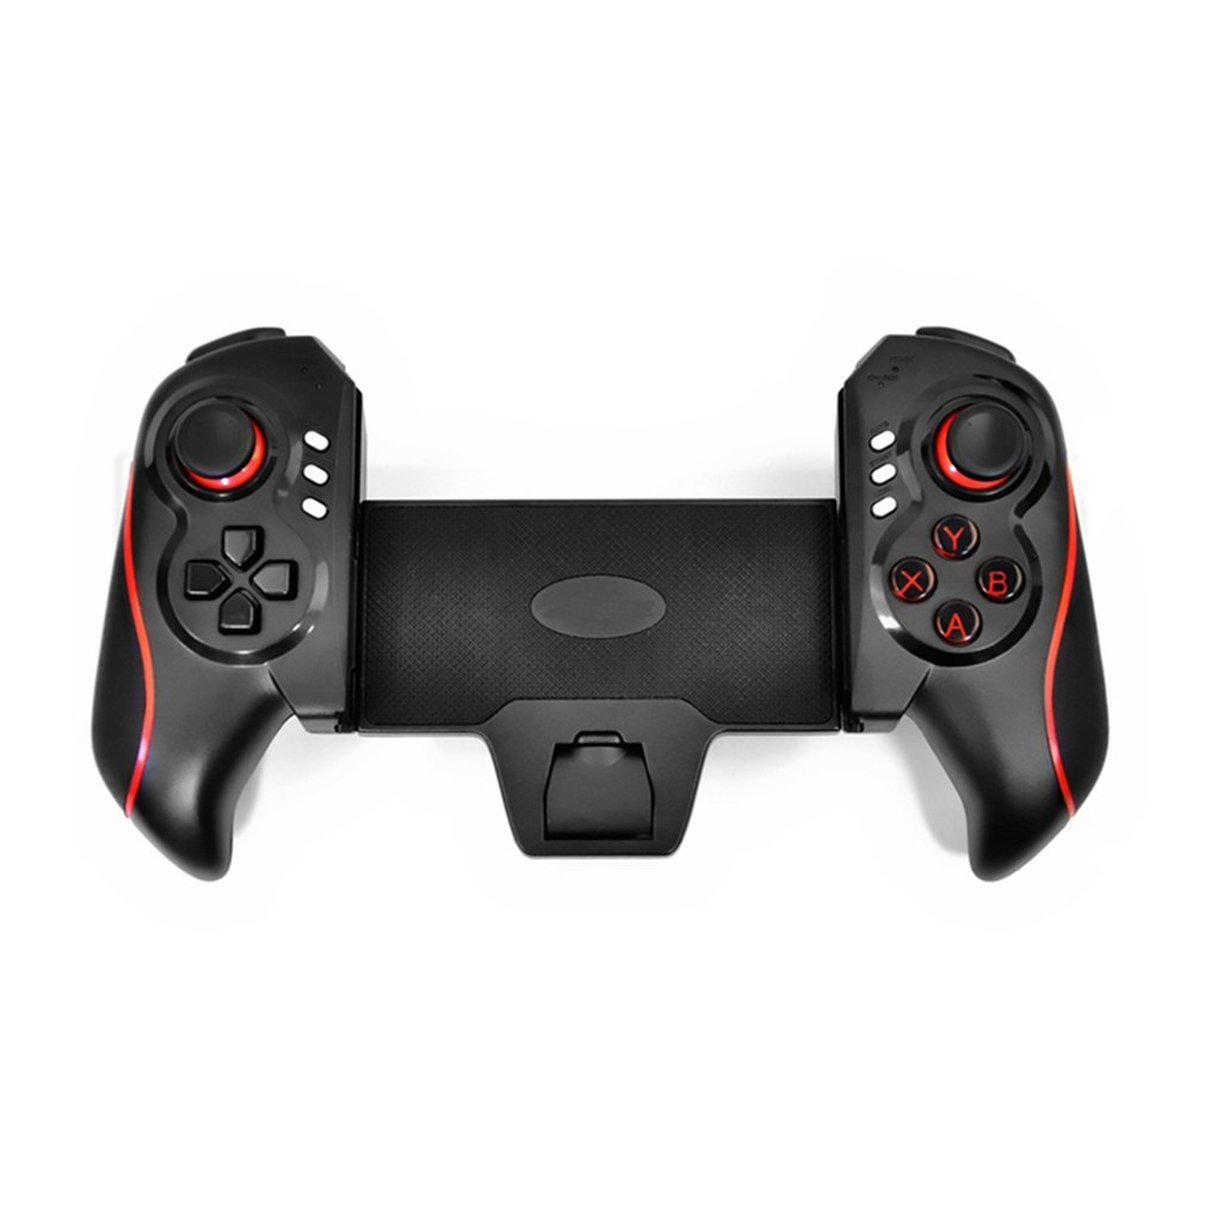 Jullyelegant Controller Gamepad Bluetooth wireless per Game Controller per Tablet da 5-10 pollici per Android 3.2 per iOS 4.3 Sopra